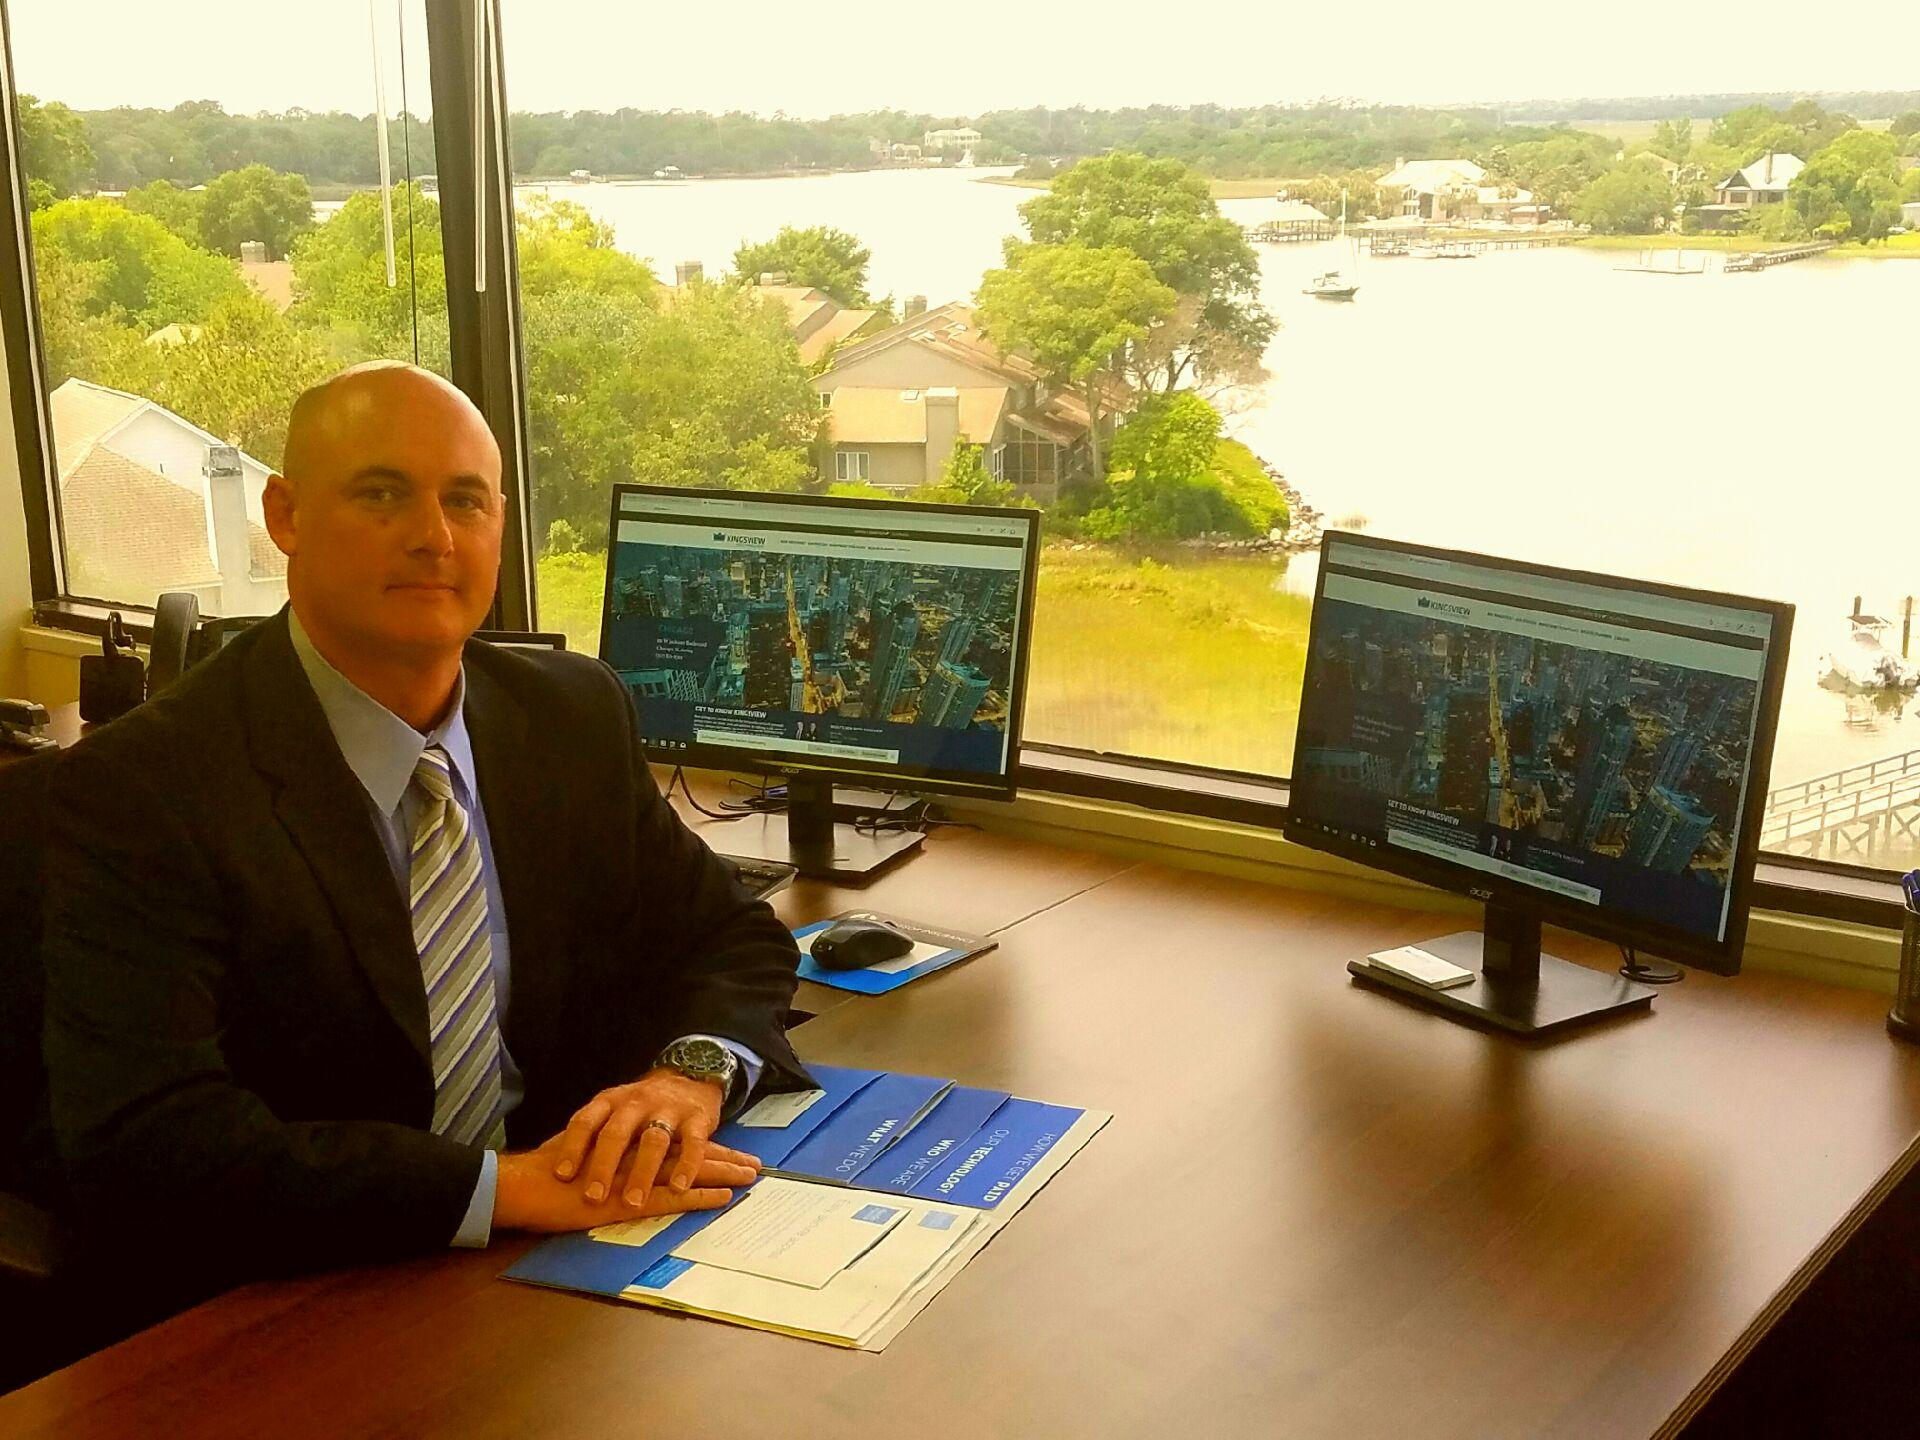 Edward Guidry, financial advisor Seabrook Island SC